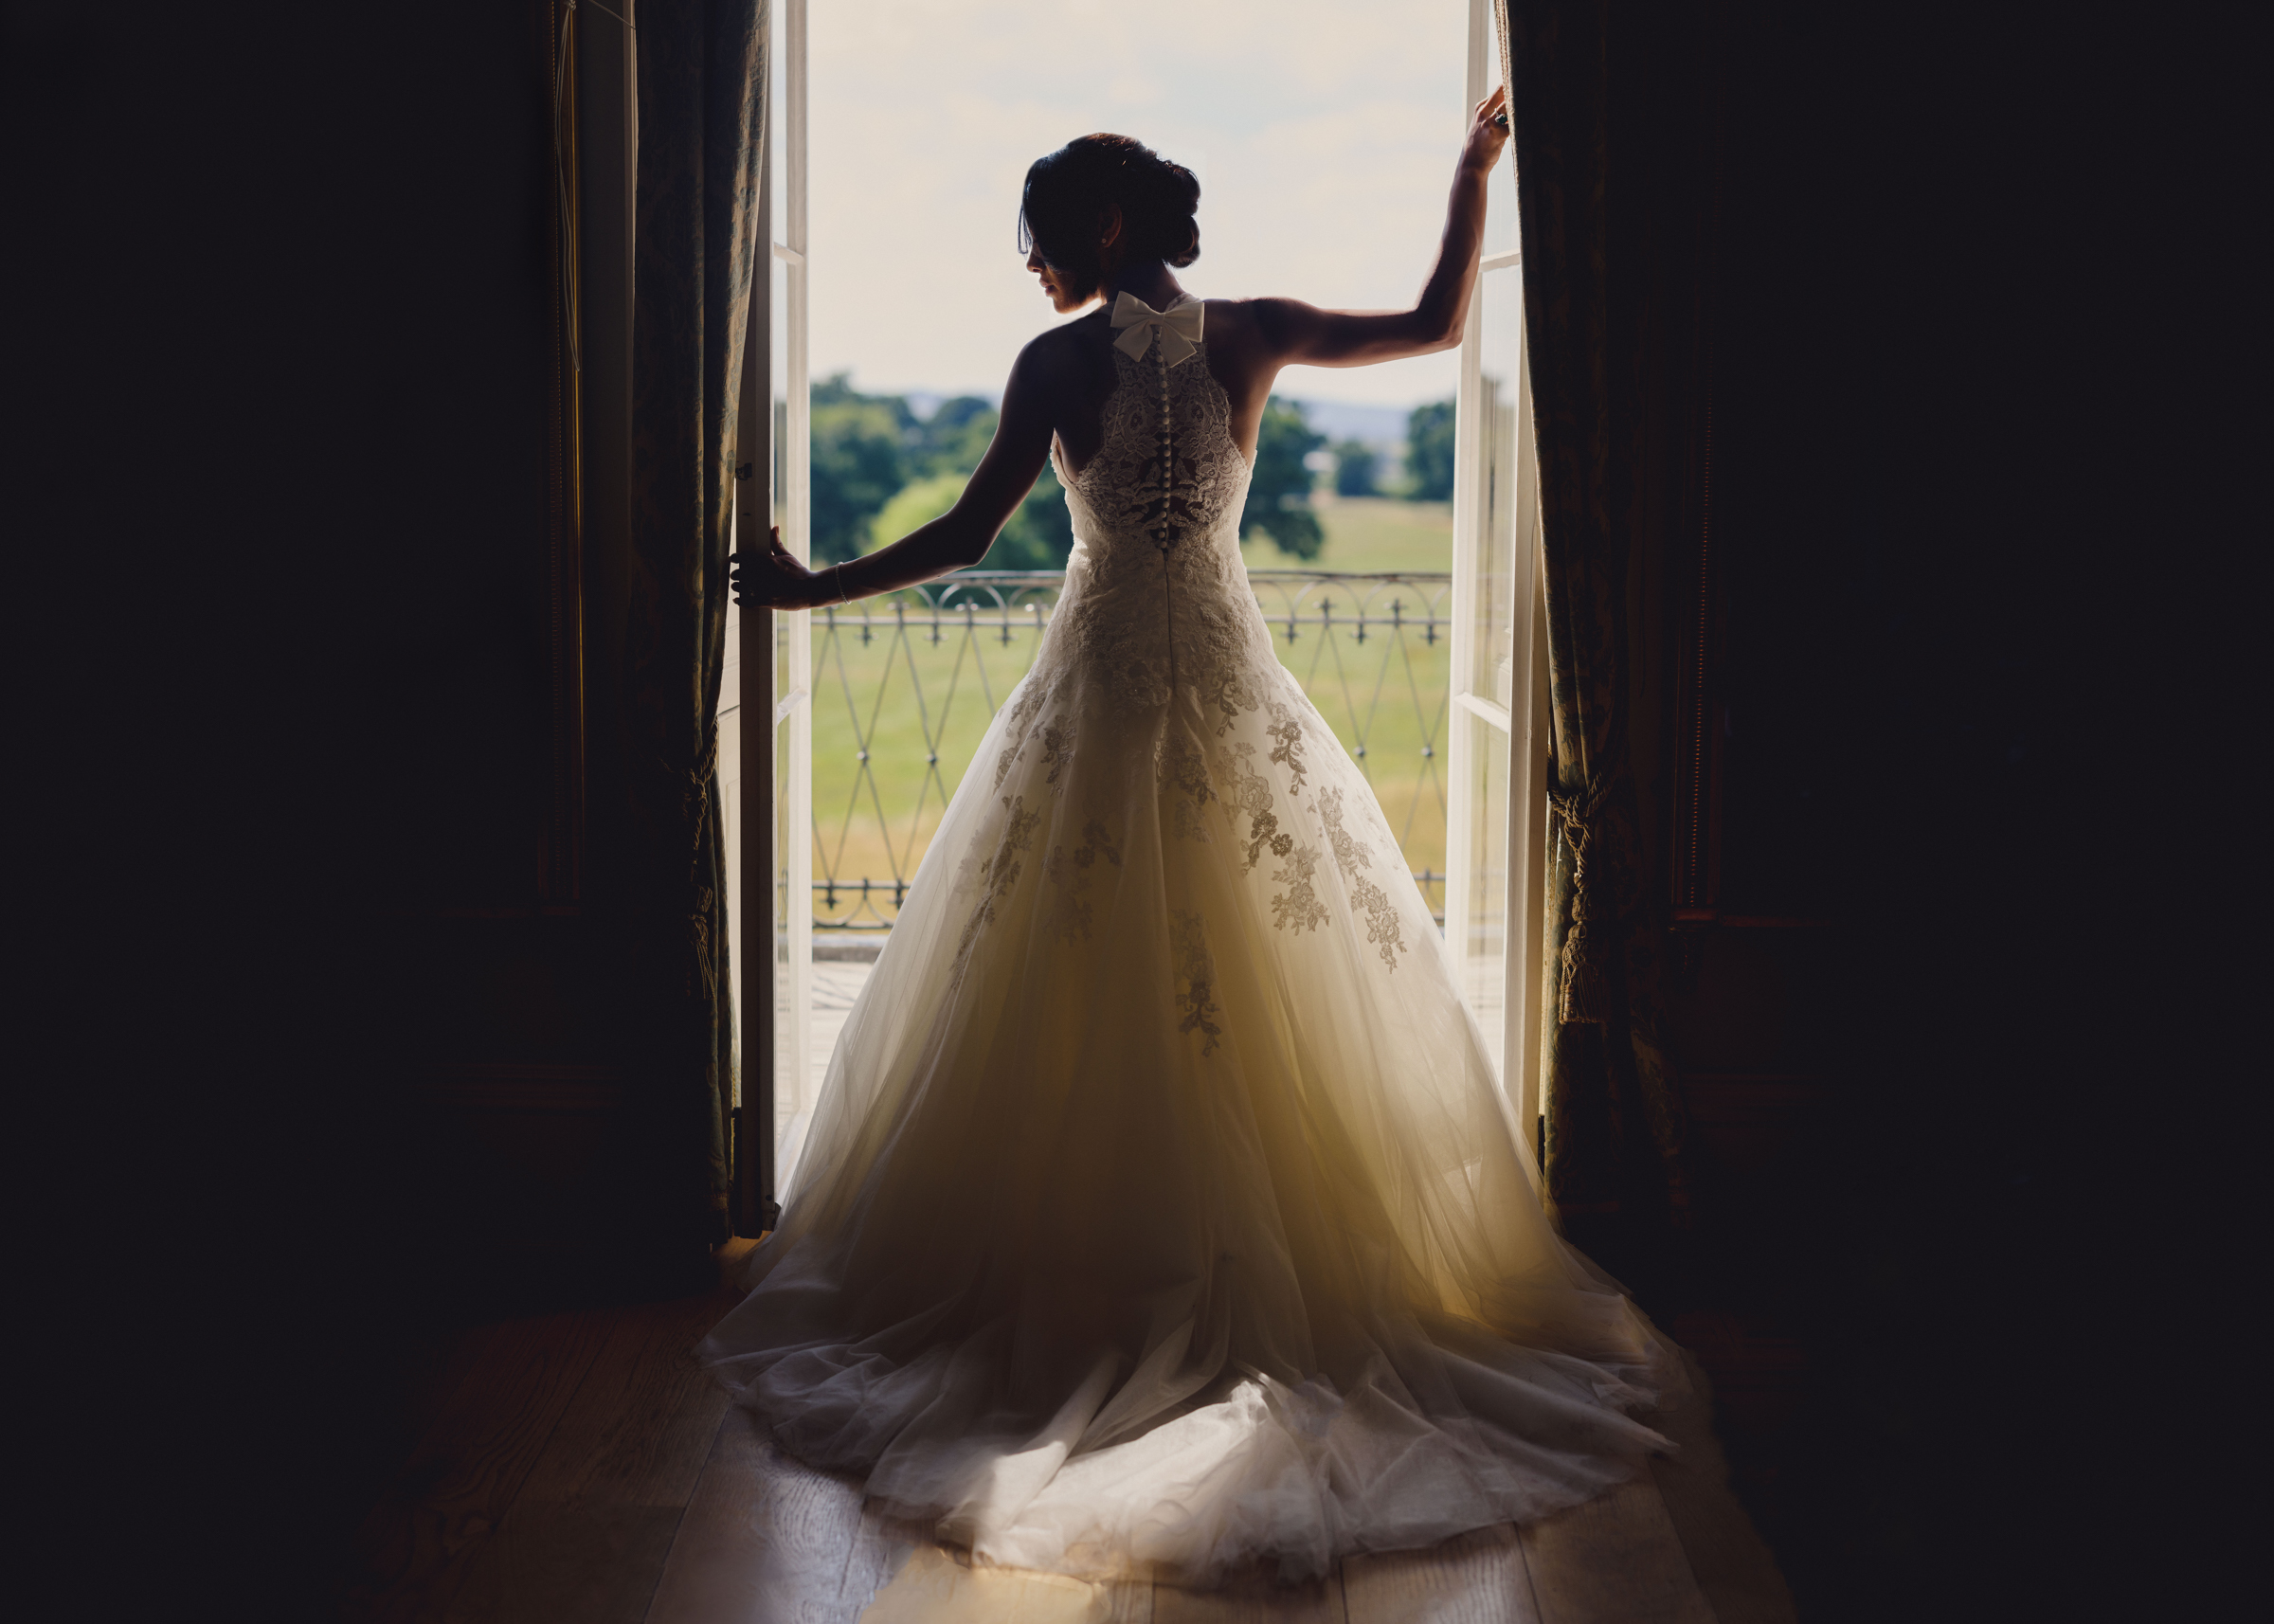 Glamorous bride looking out at balcony - photo by MIKI Studios